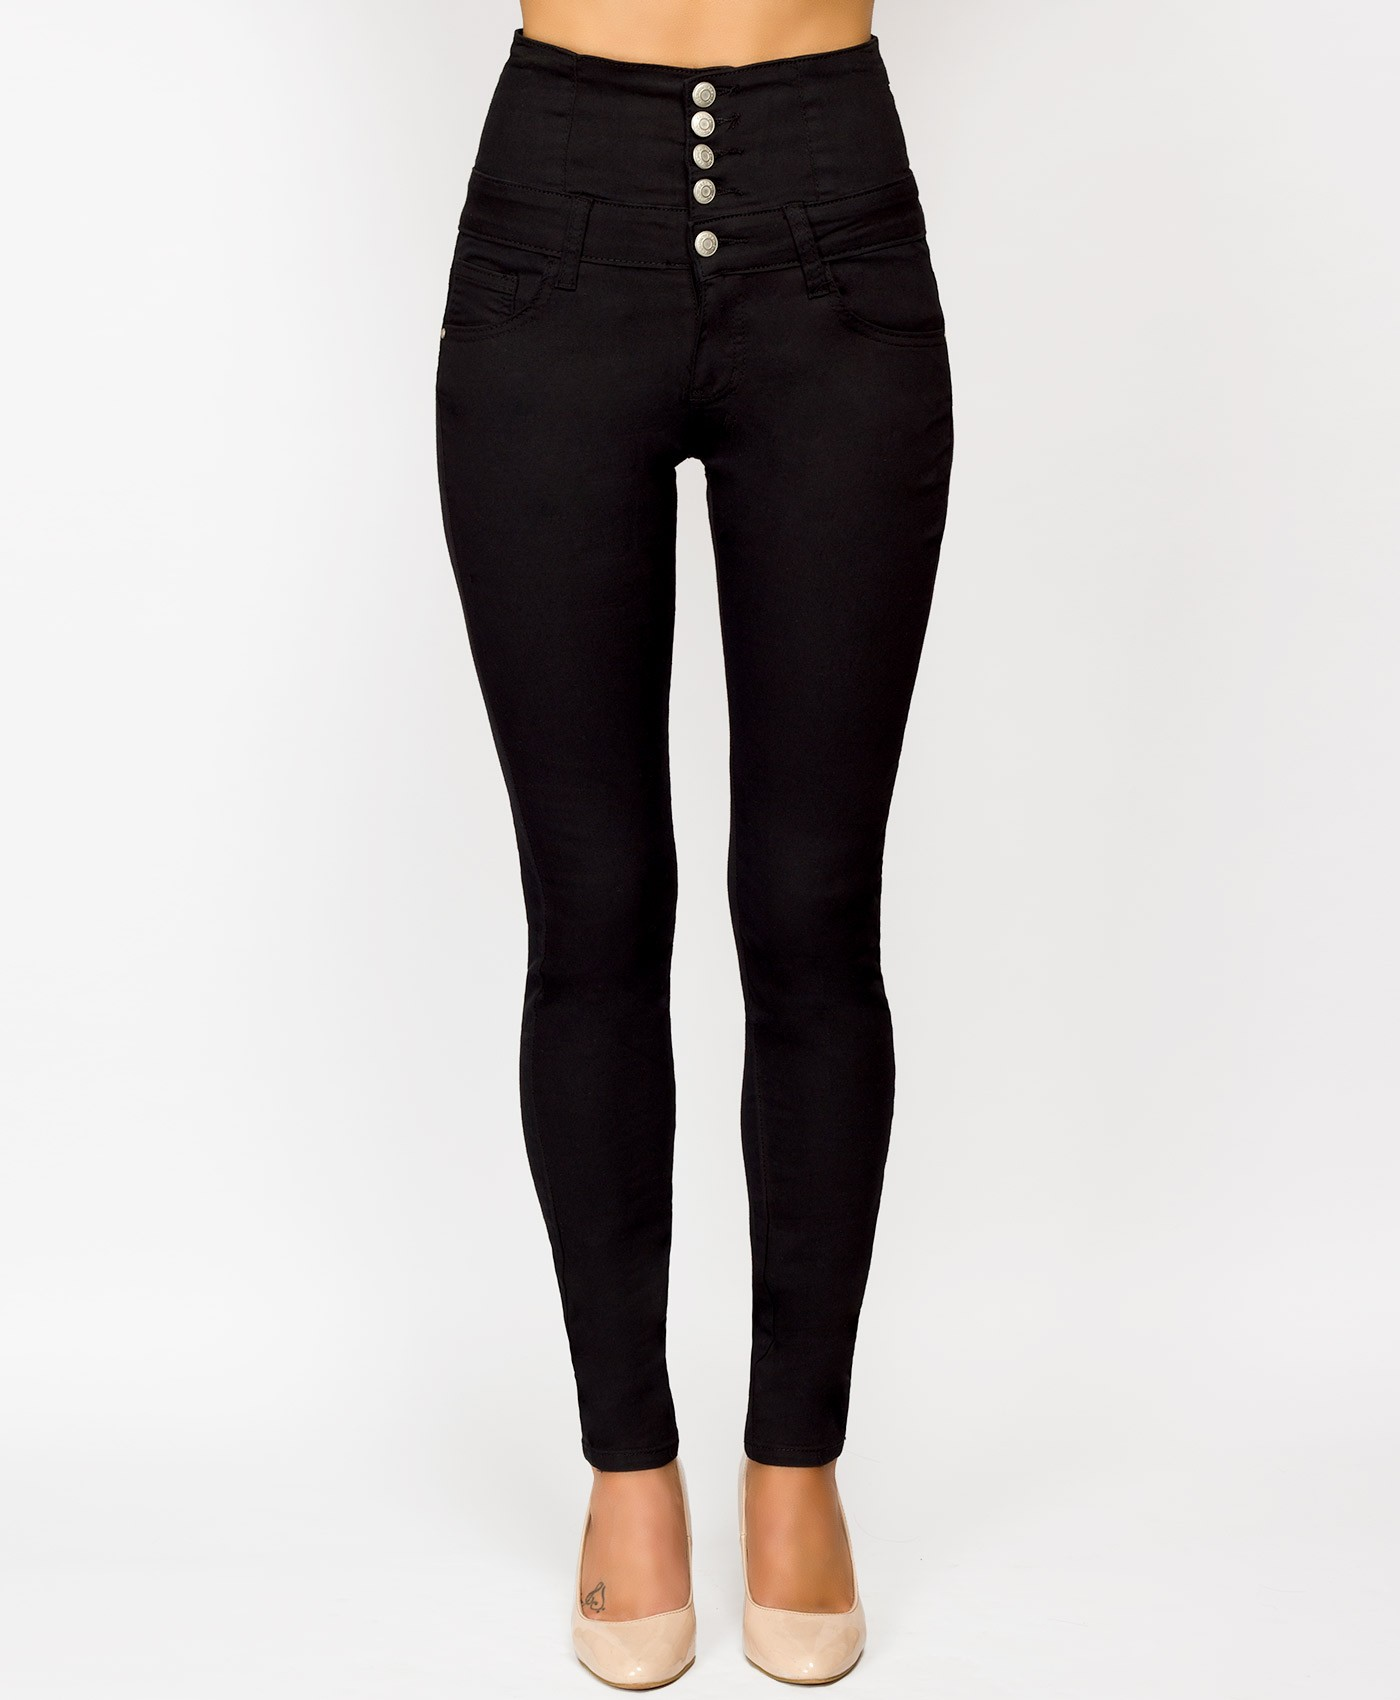 Black-Five-Button-High-Waisted-Jeans-1